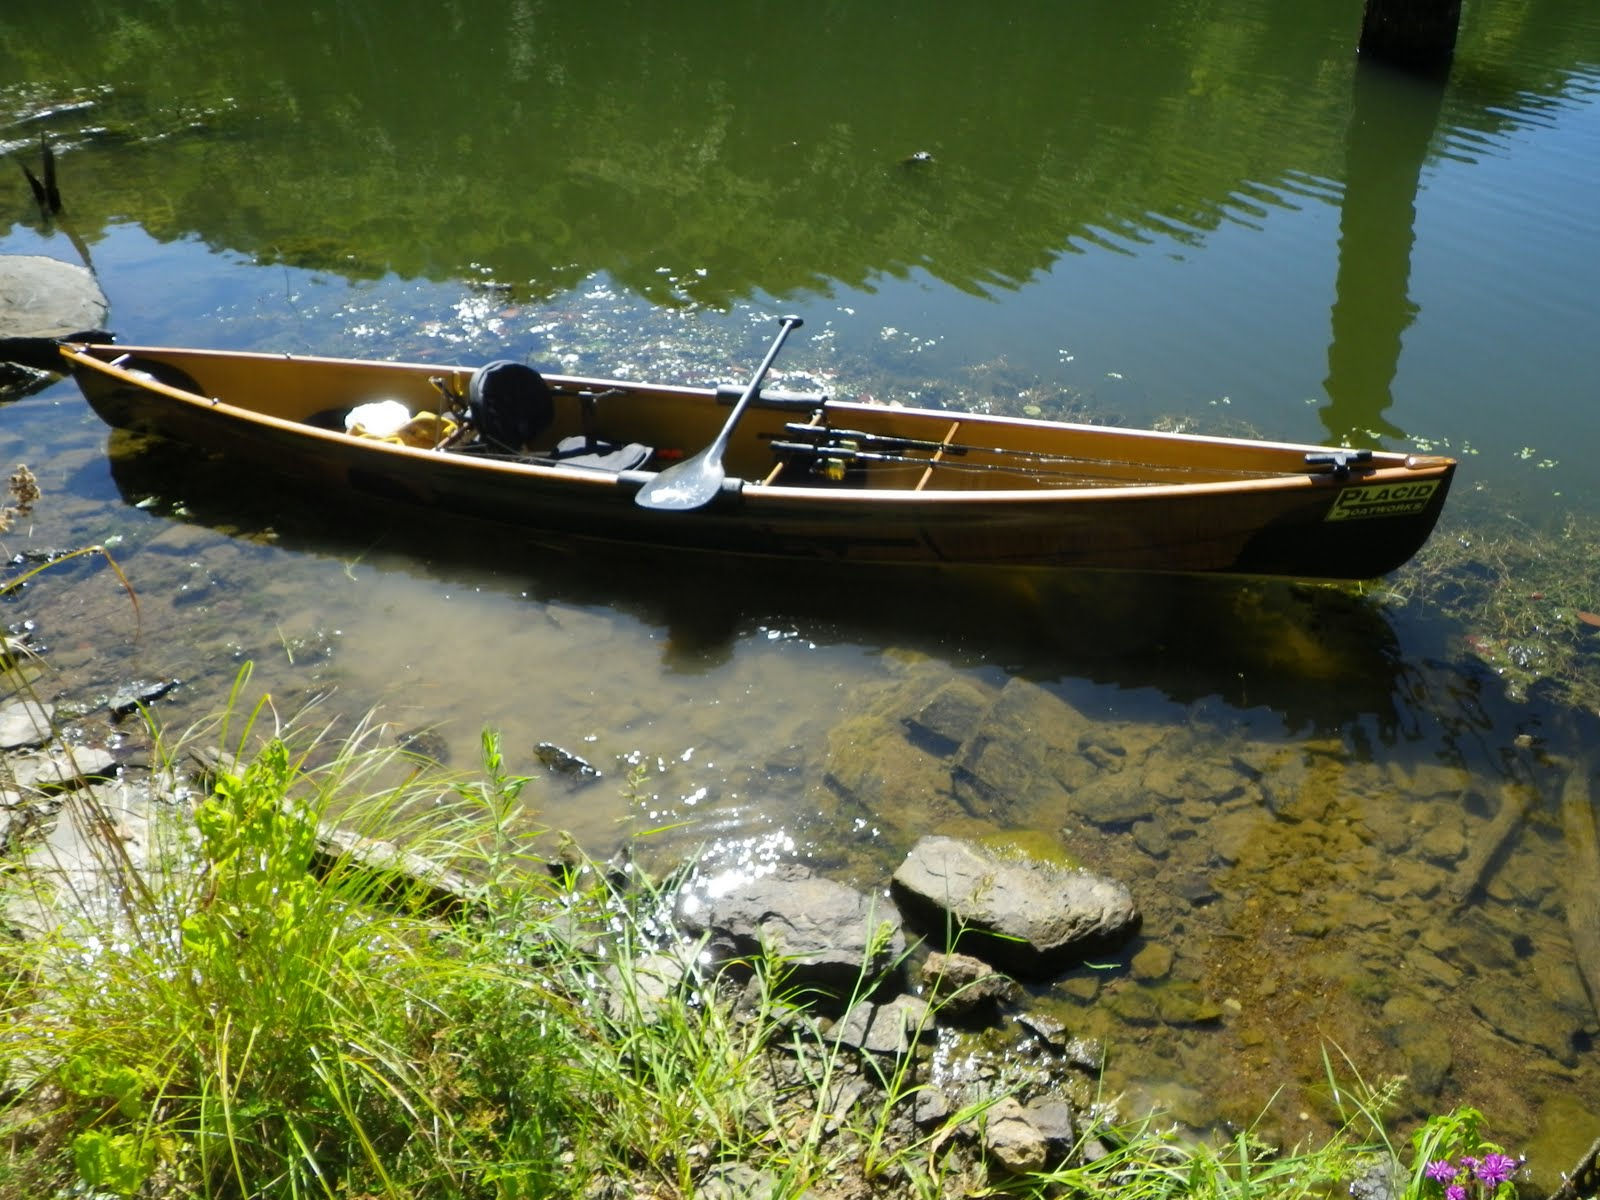 Placid boatworks rapidfire canoe rigged for fishing in wv for Fishing from a canoe